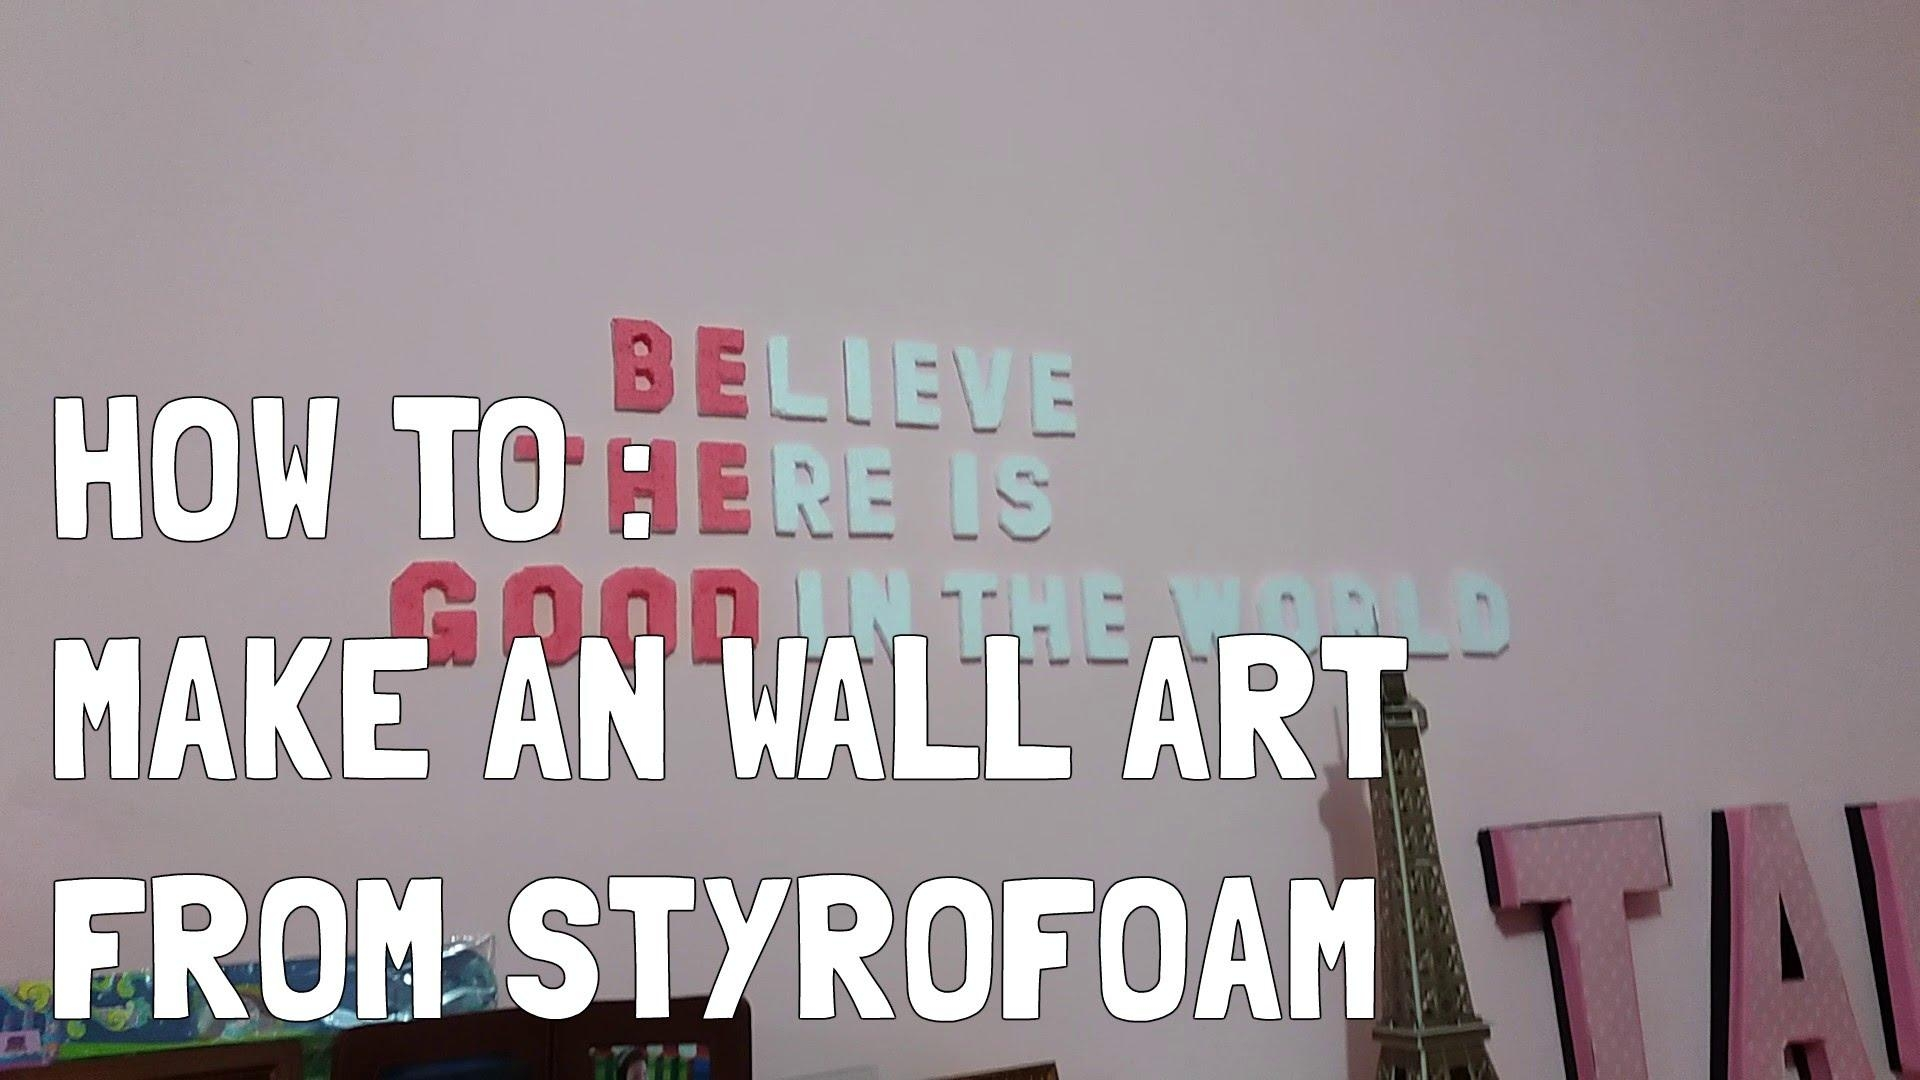 Diy] How To : Make An Wall Art From Styrofoam – Youtube In Styrofoam Wall Art (View 2 of 20)